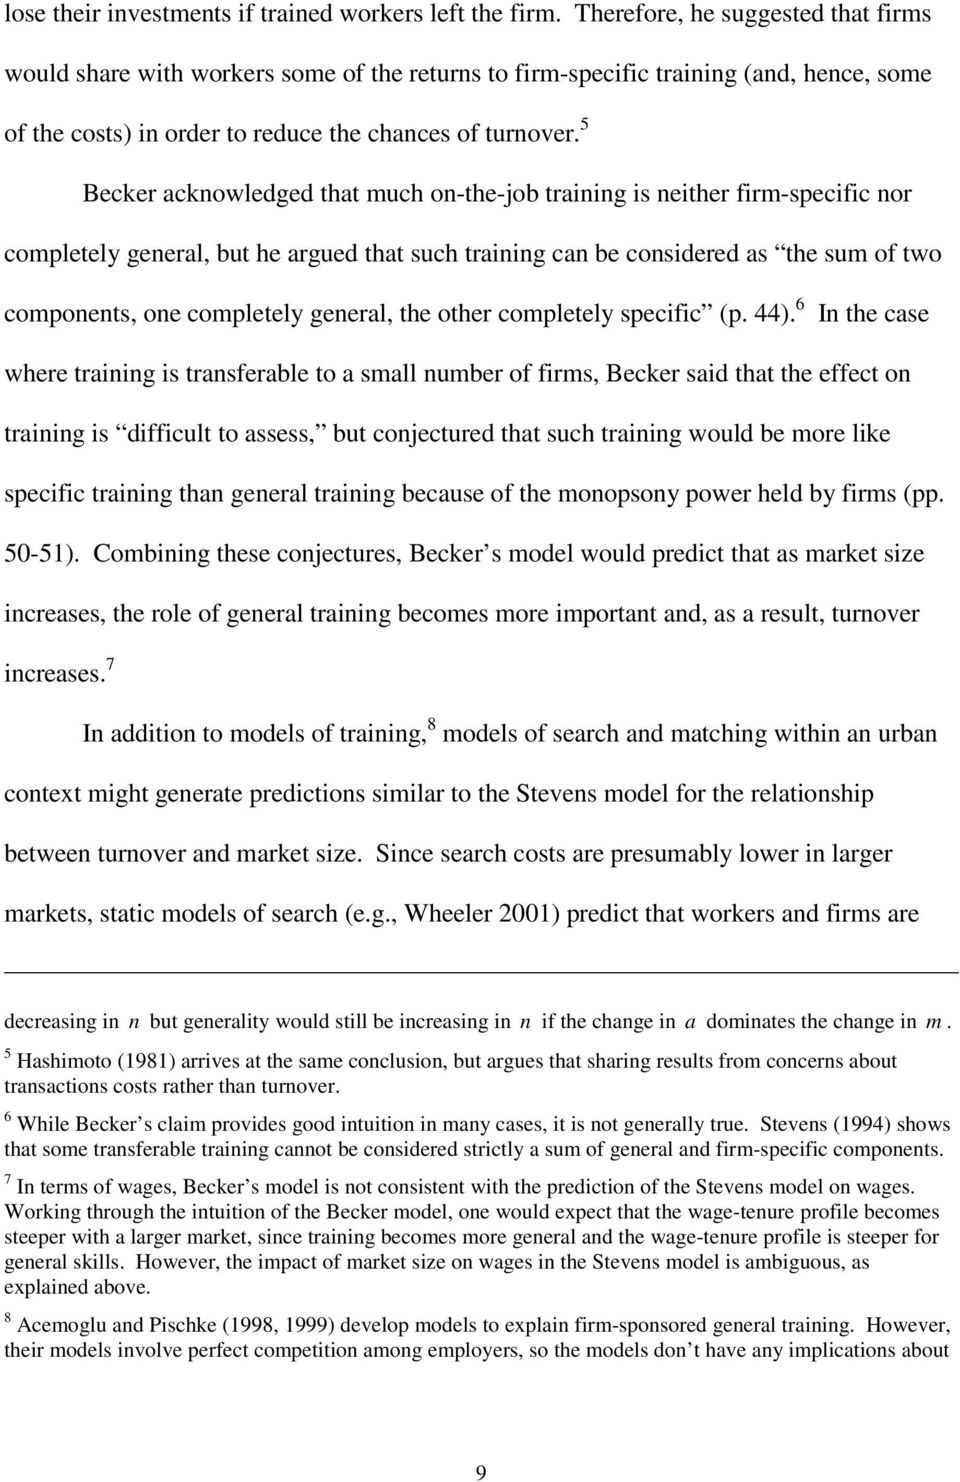 5 Becker acknowledged that much on-the-job training is neither firm-specific nor completely general, but he argued that such training can be considered as the sum of two components, one completely